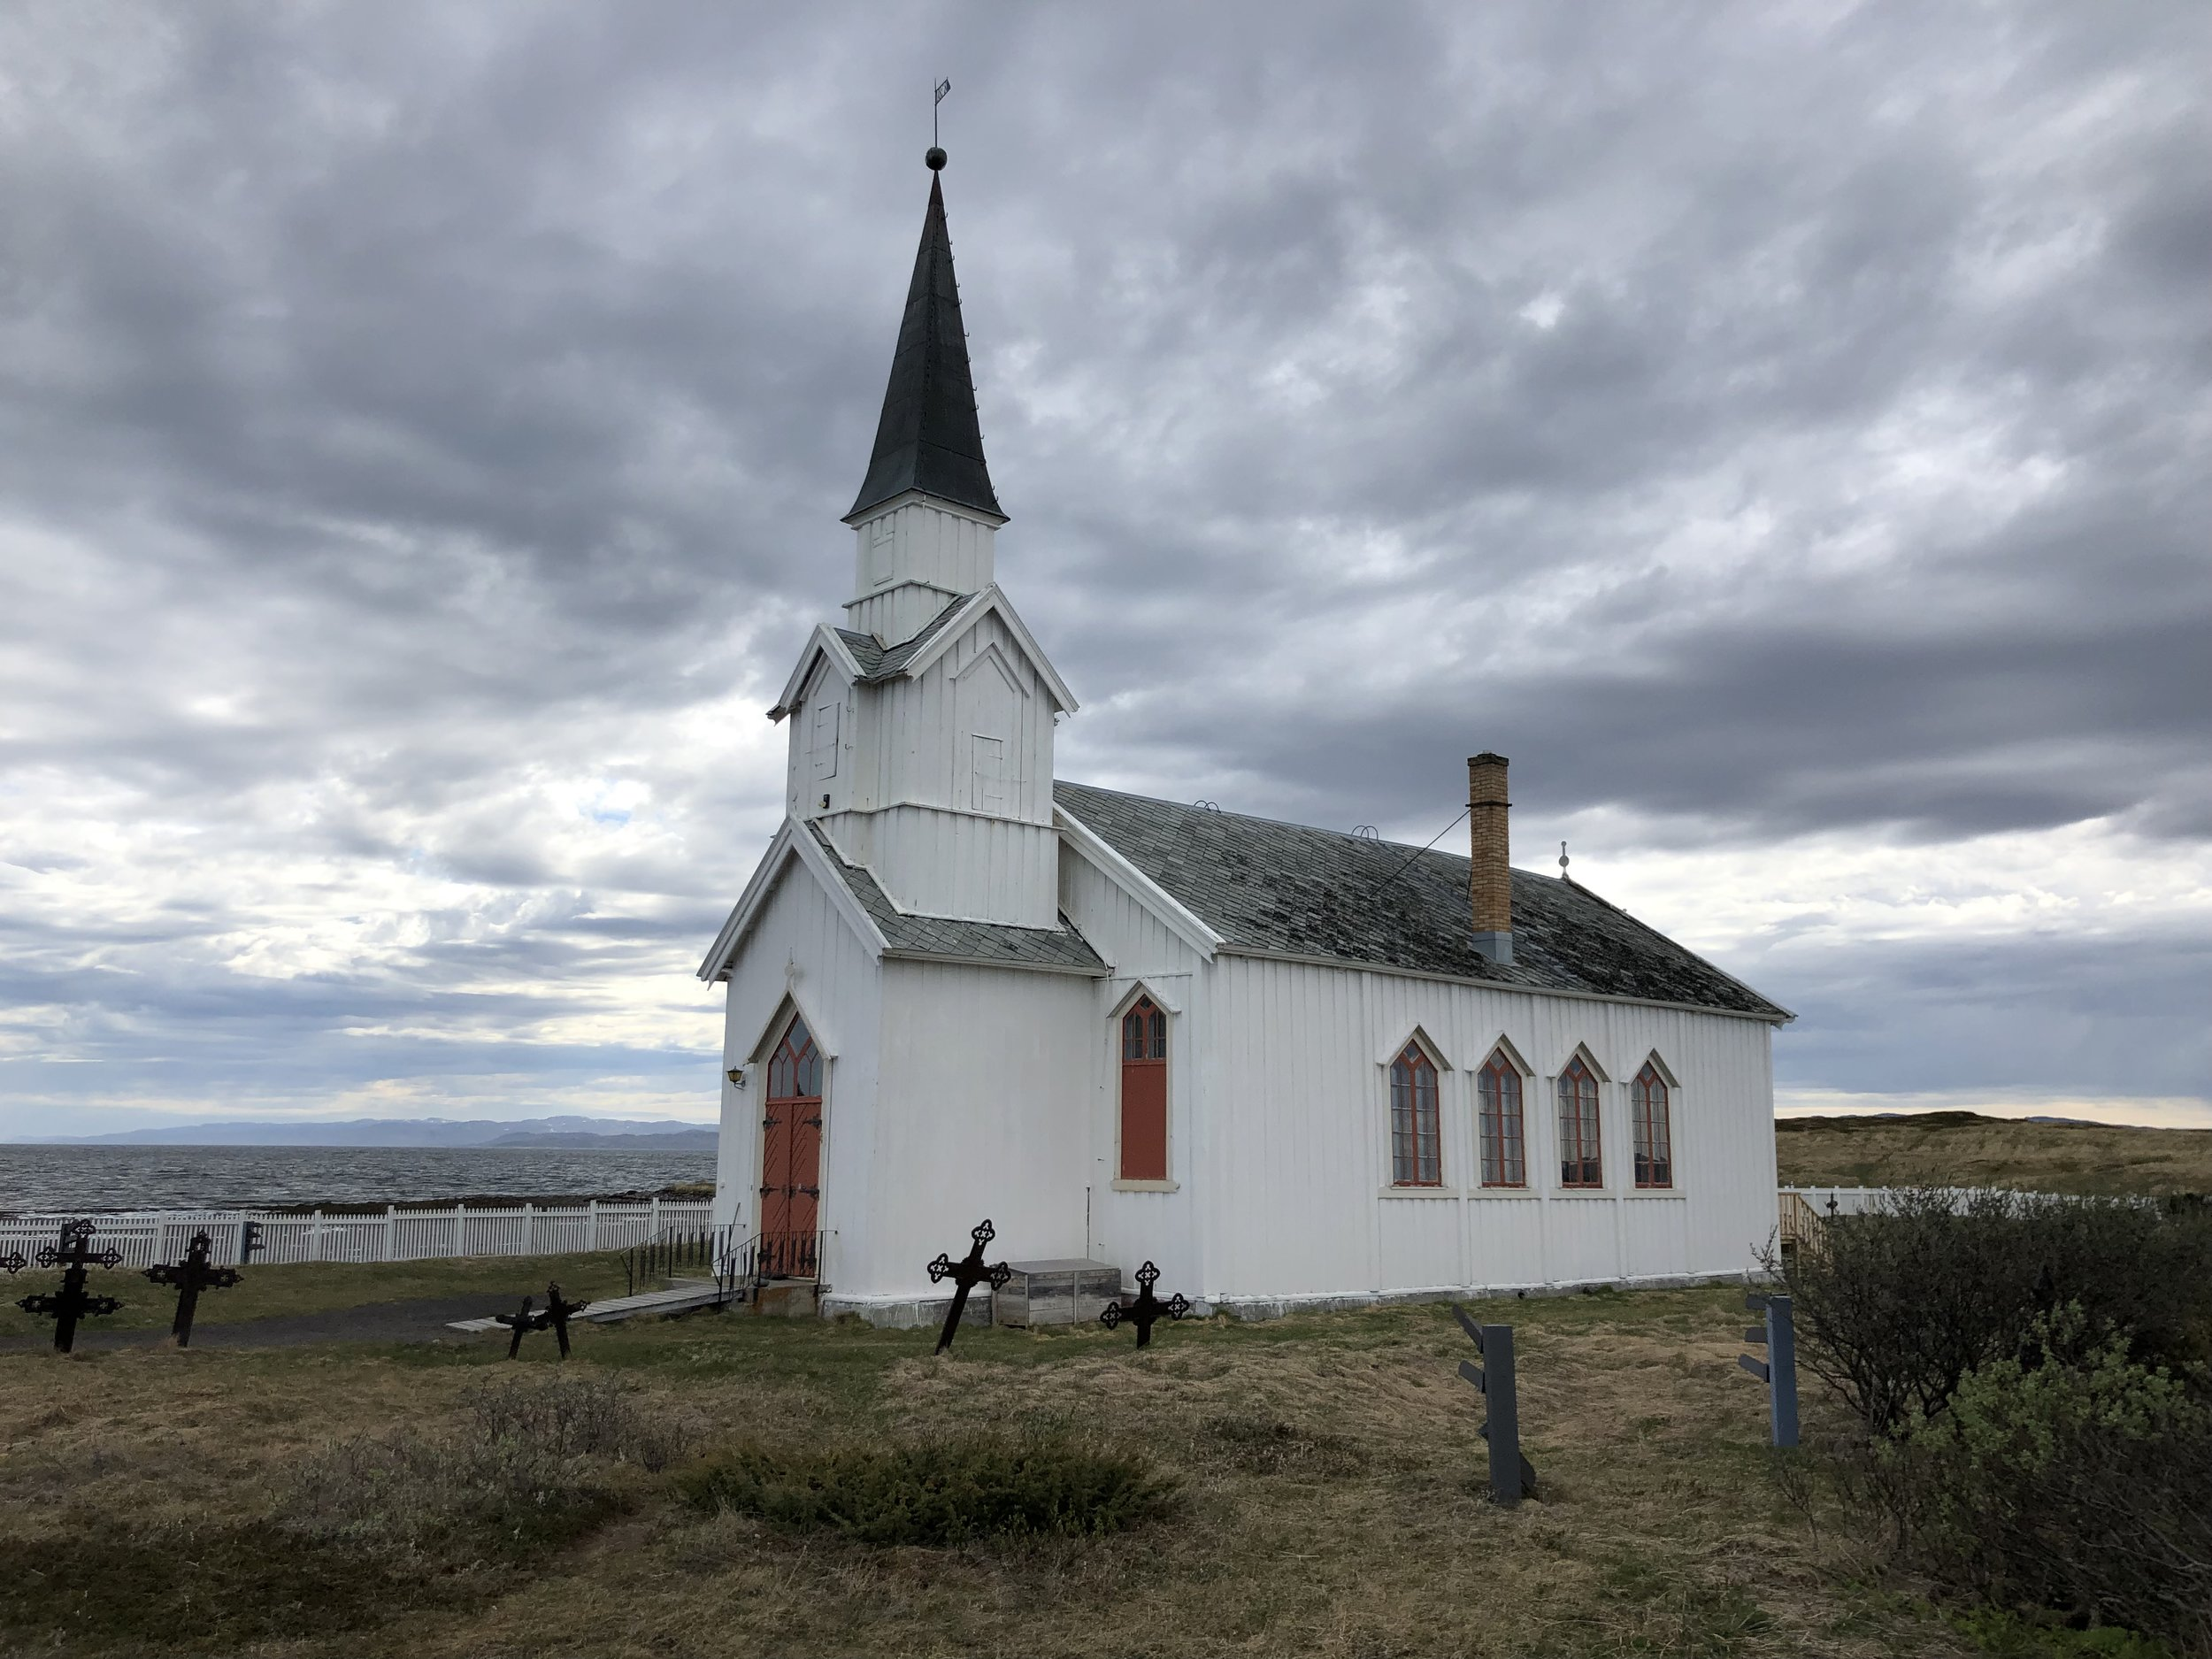 Small active church along the Norwegian coast above Finland.